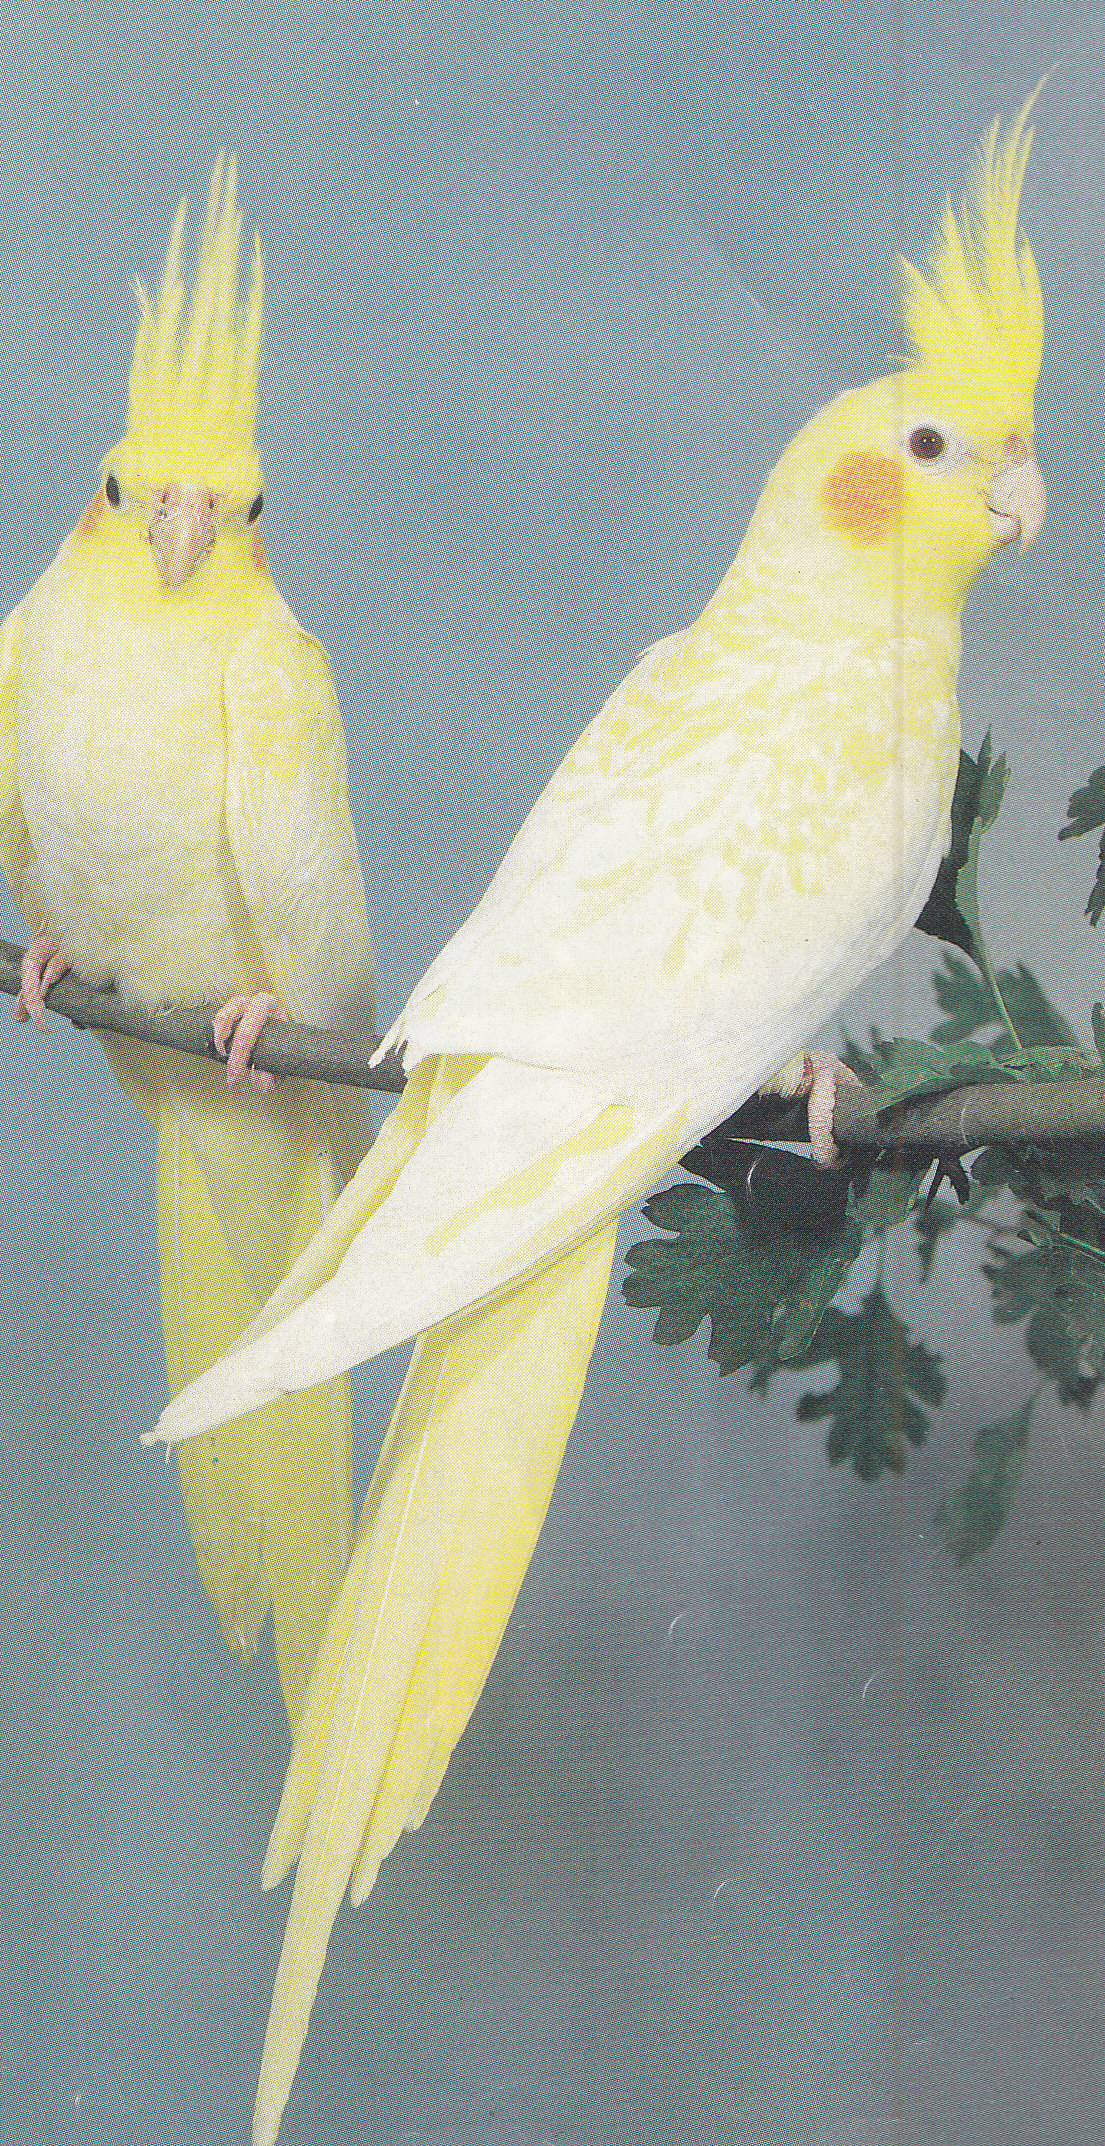 facts on cockatiels